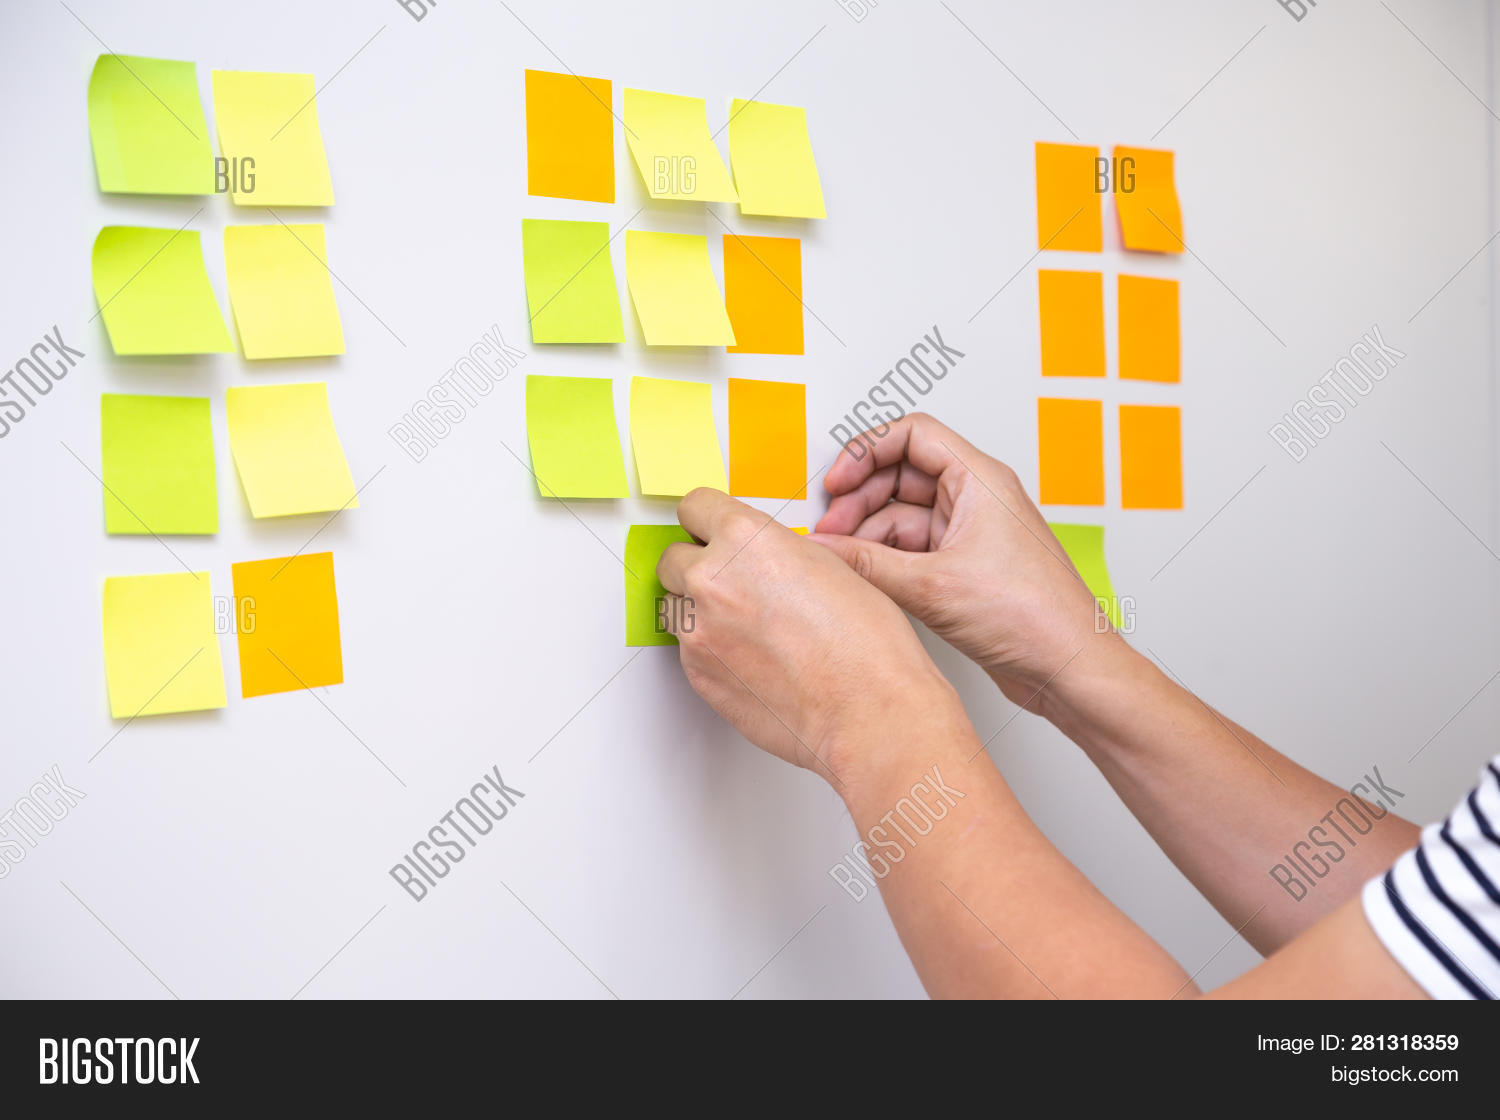 agile,appointment,attaching,board,business,date,deadline,development,diagram,do,due,efficiency,execute,goal,hand,information,kanban,lean,list,male,man,management,manufacturing,method,note,office,organization,paper,planning,process,progress,project,reminder,schedule,scrum,software,start,step,stickers,sticky,strategy,target,task,teamwork,text,time,to,wall,work